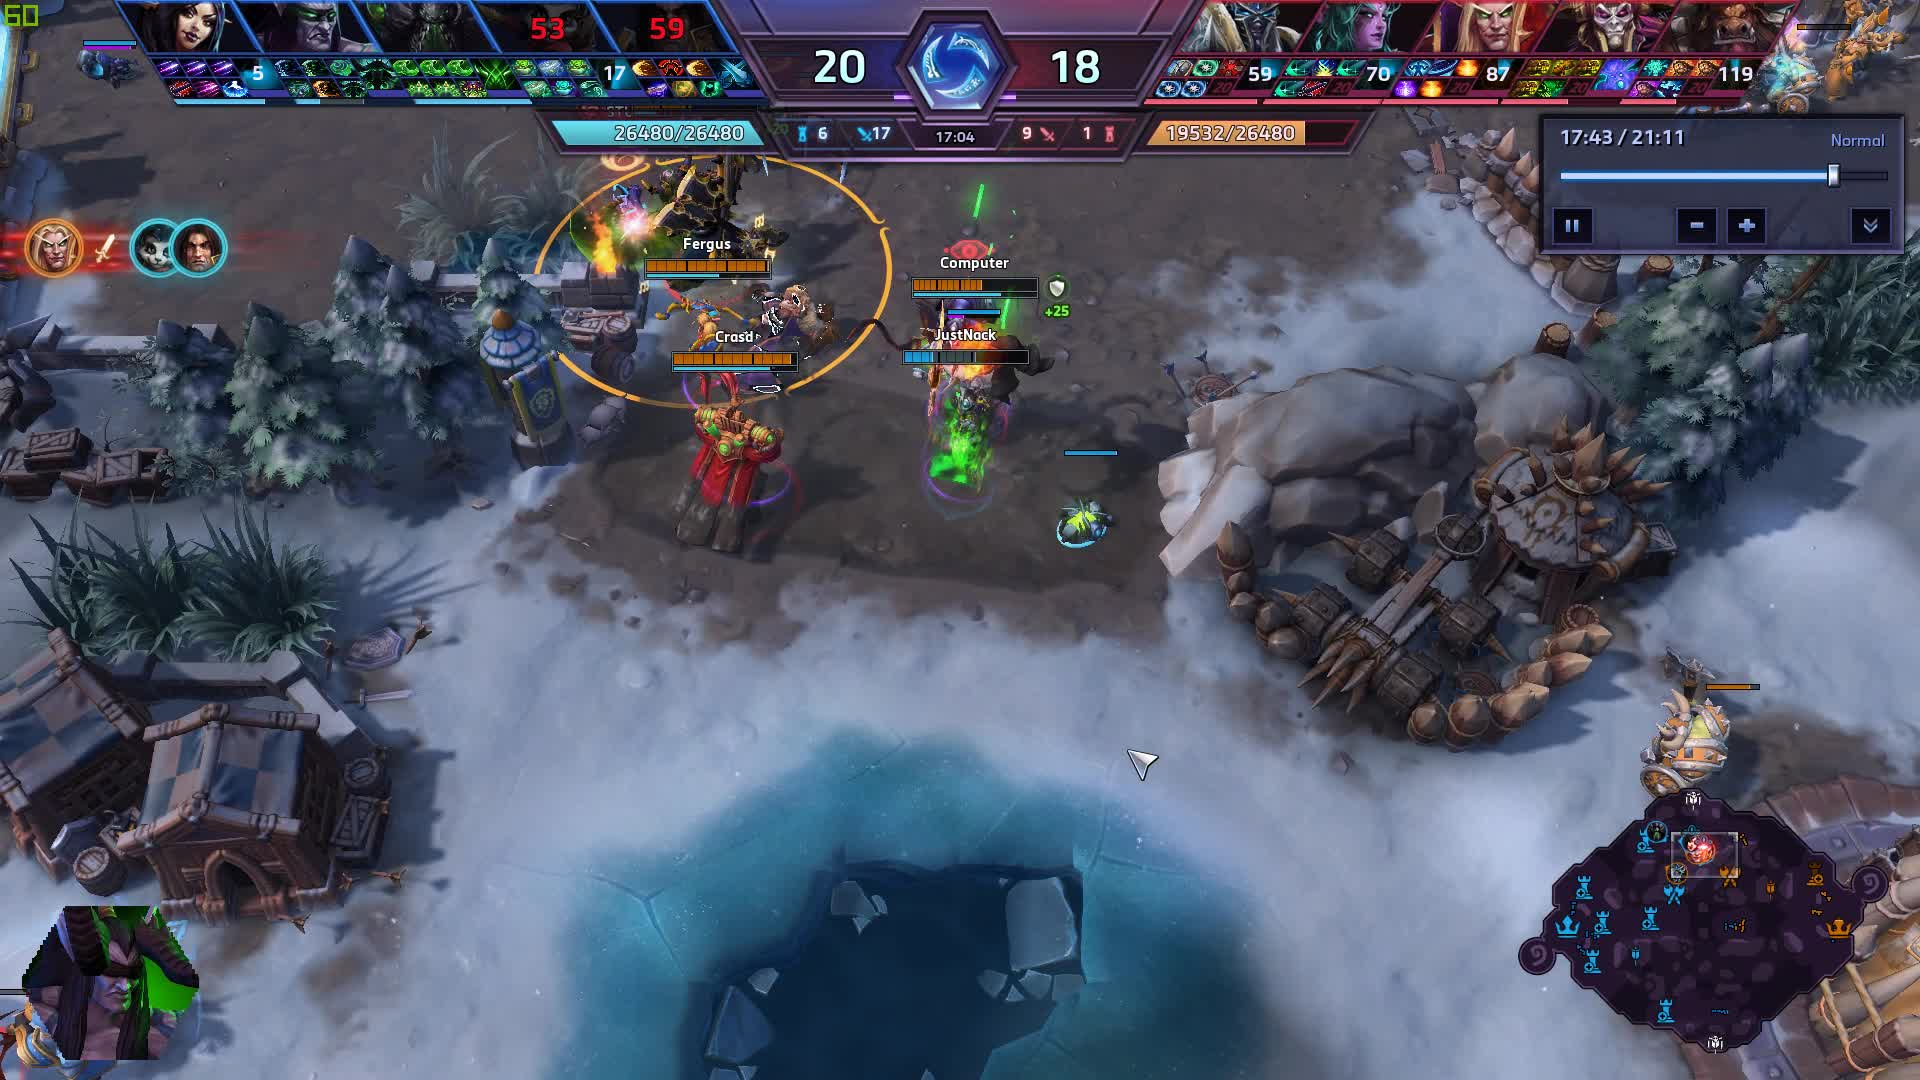 heroesofthestorm, Heroes of the Storm 2018.12.10 - 20.32.54.03 GIFs